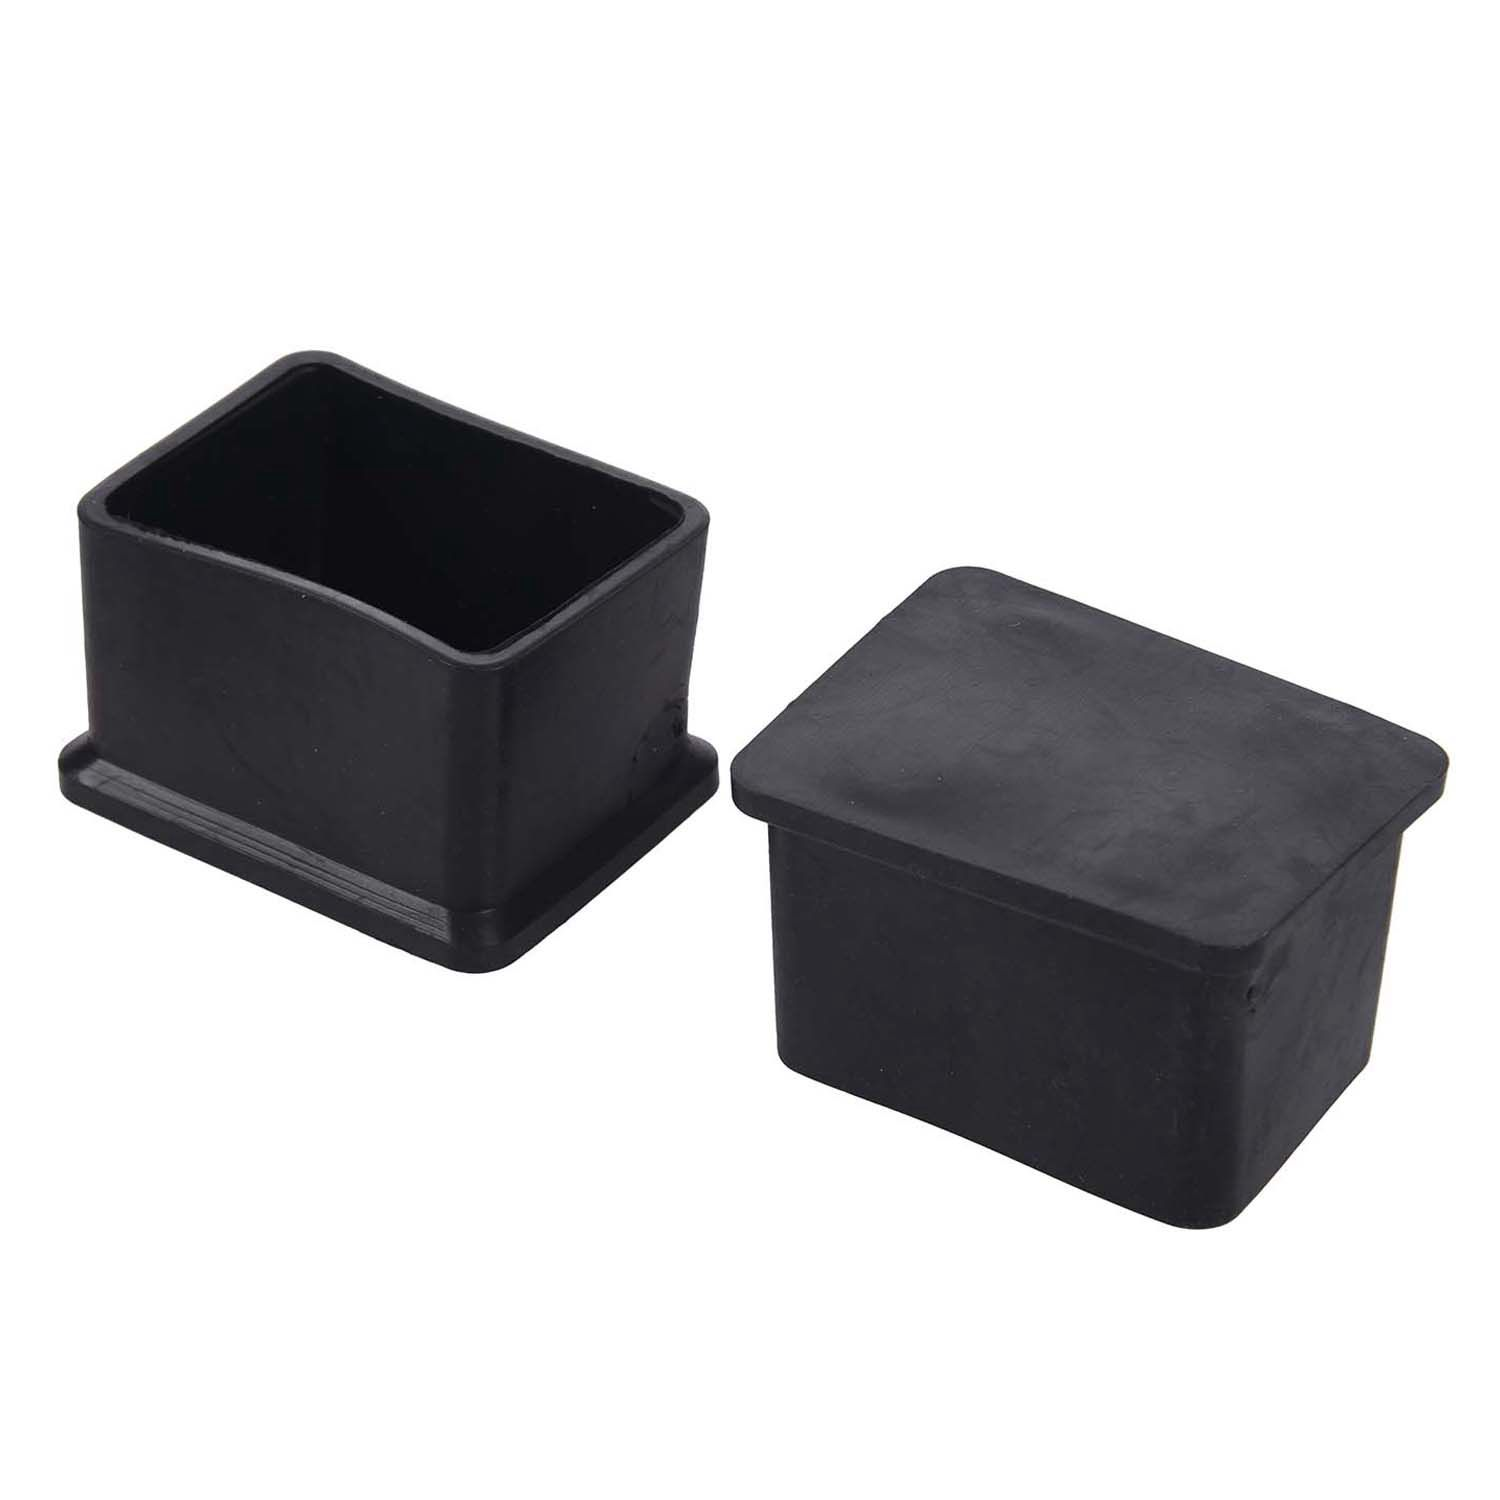 Hot Sale 10 Pcs Rubber 30x40mm Chair Table Foot Cover Furniture Leg Protectors цена